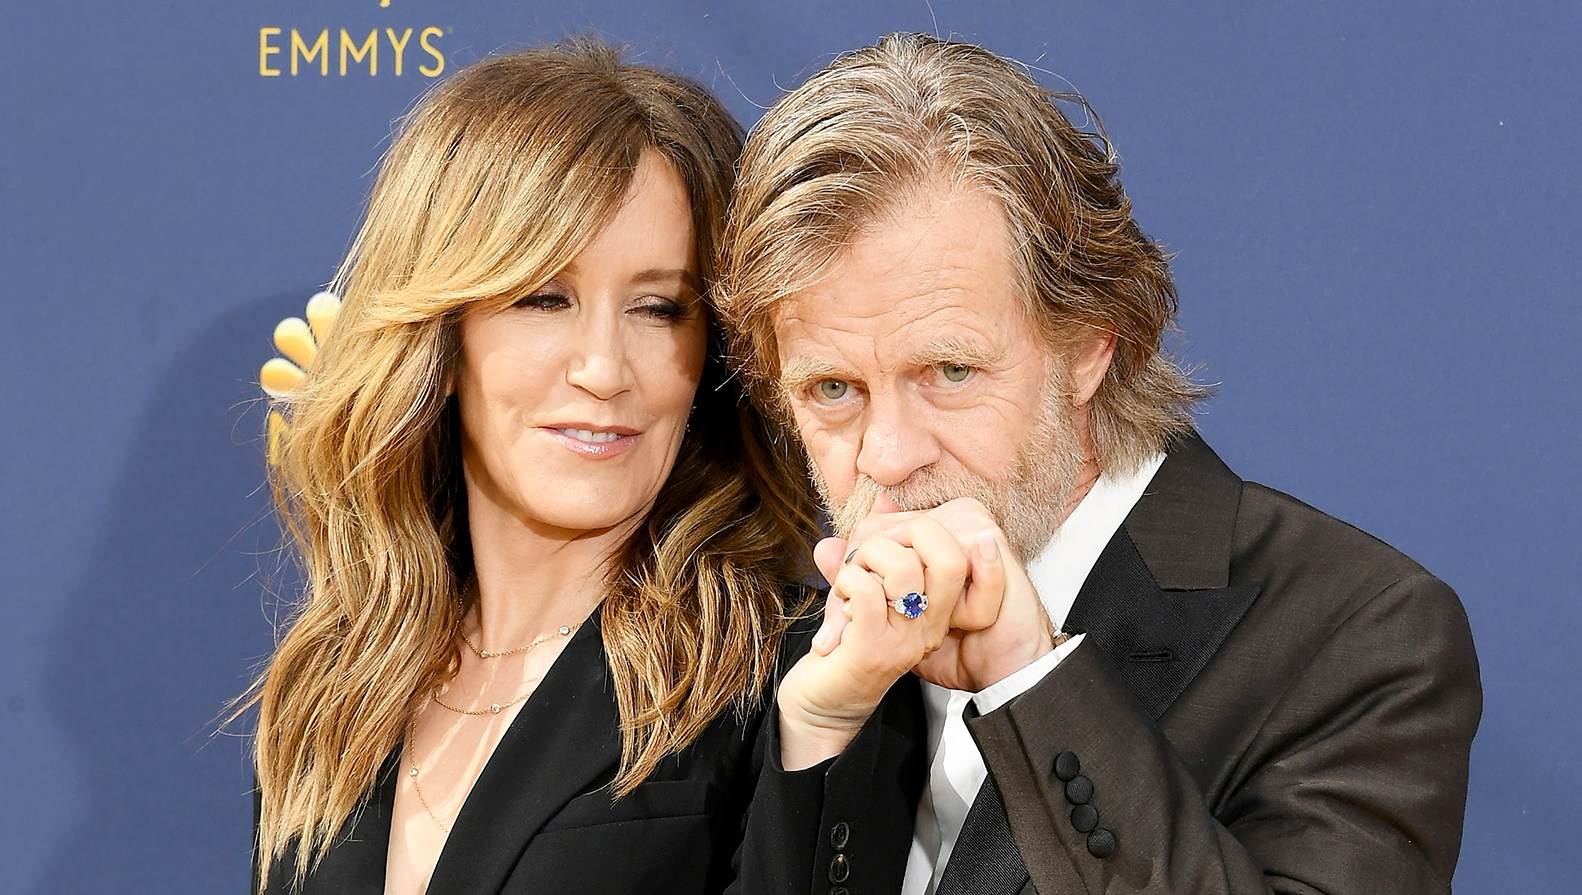 Felicity Huffman William H. Macy Emmys 2018